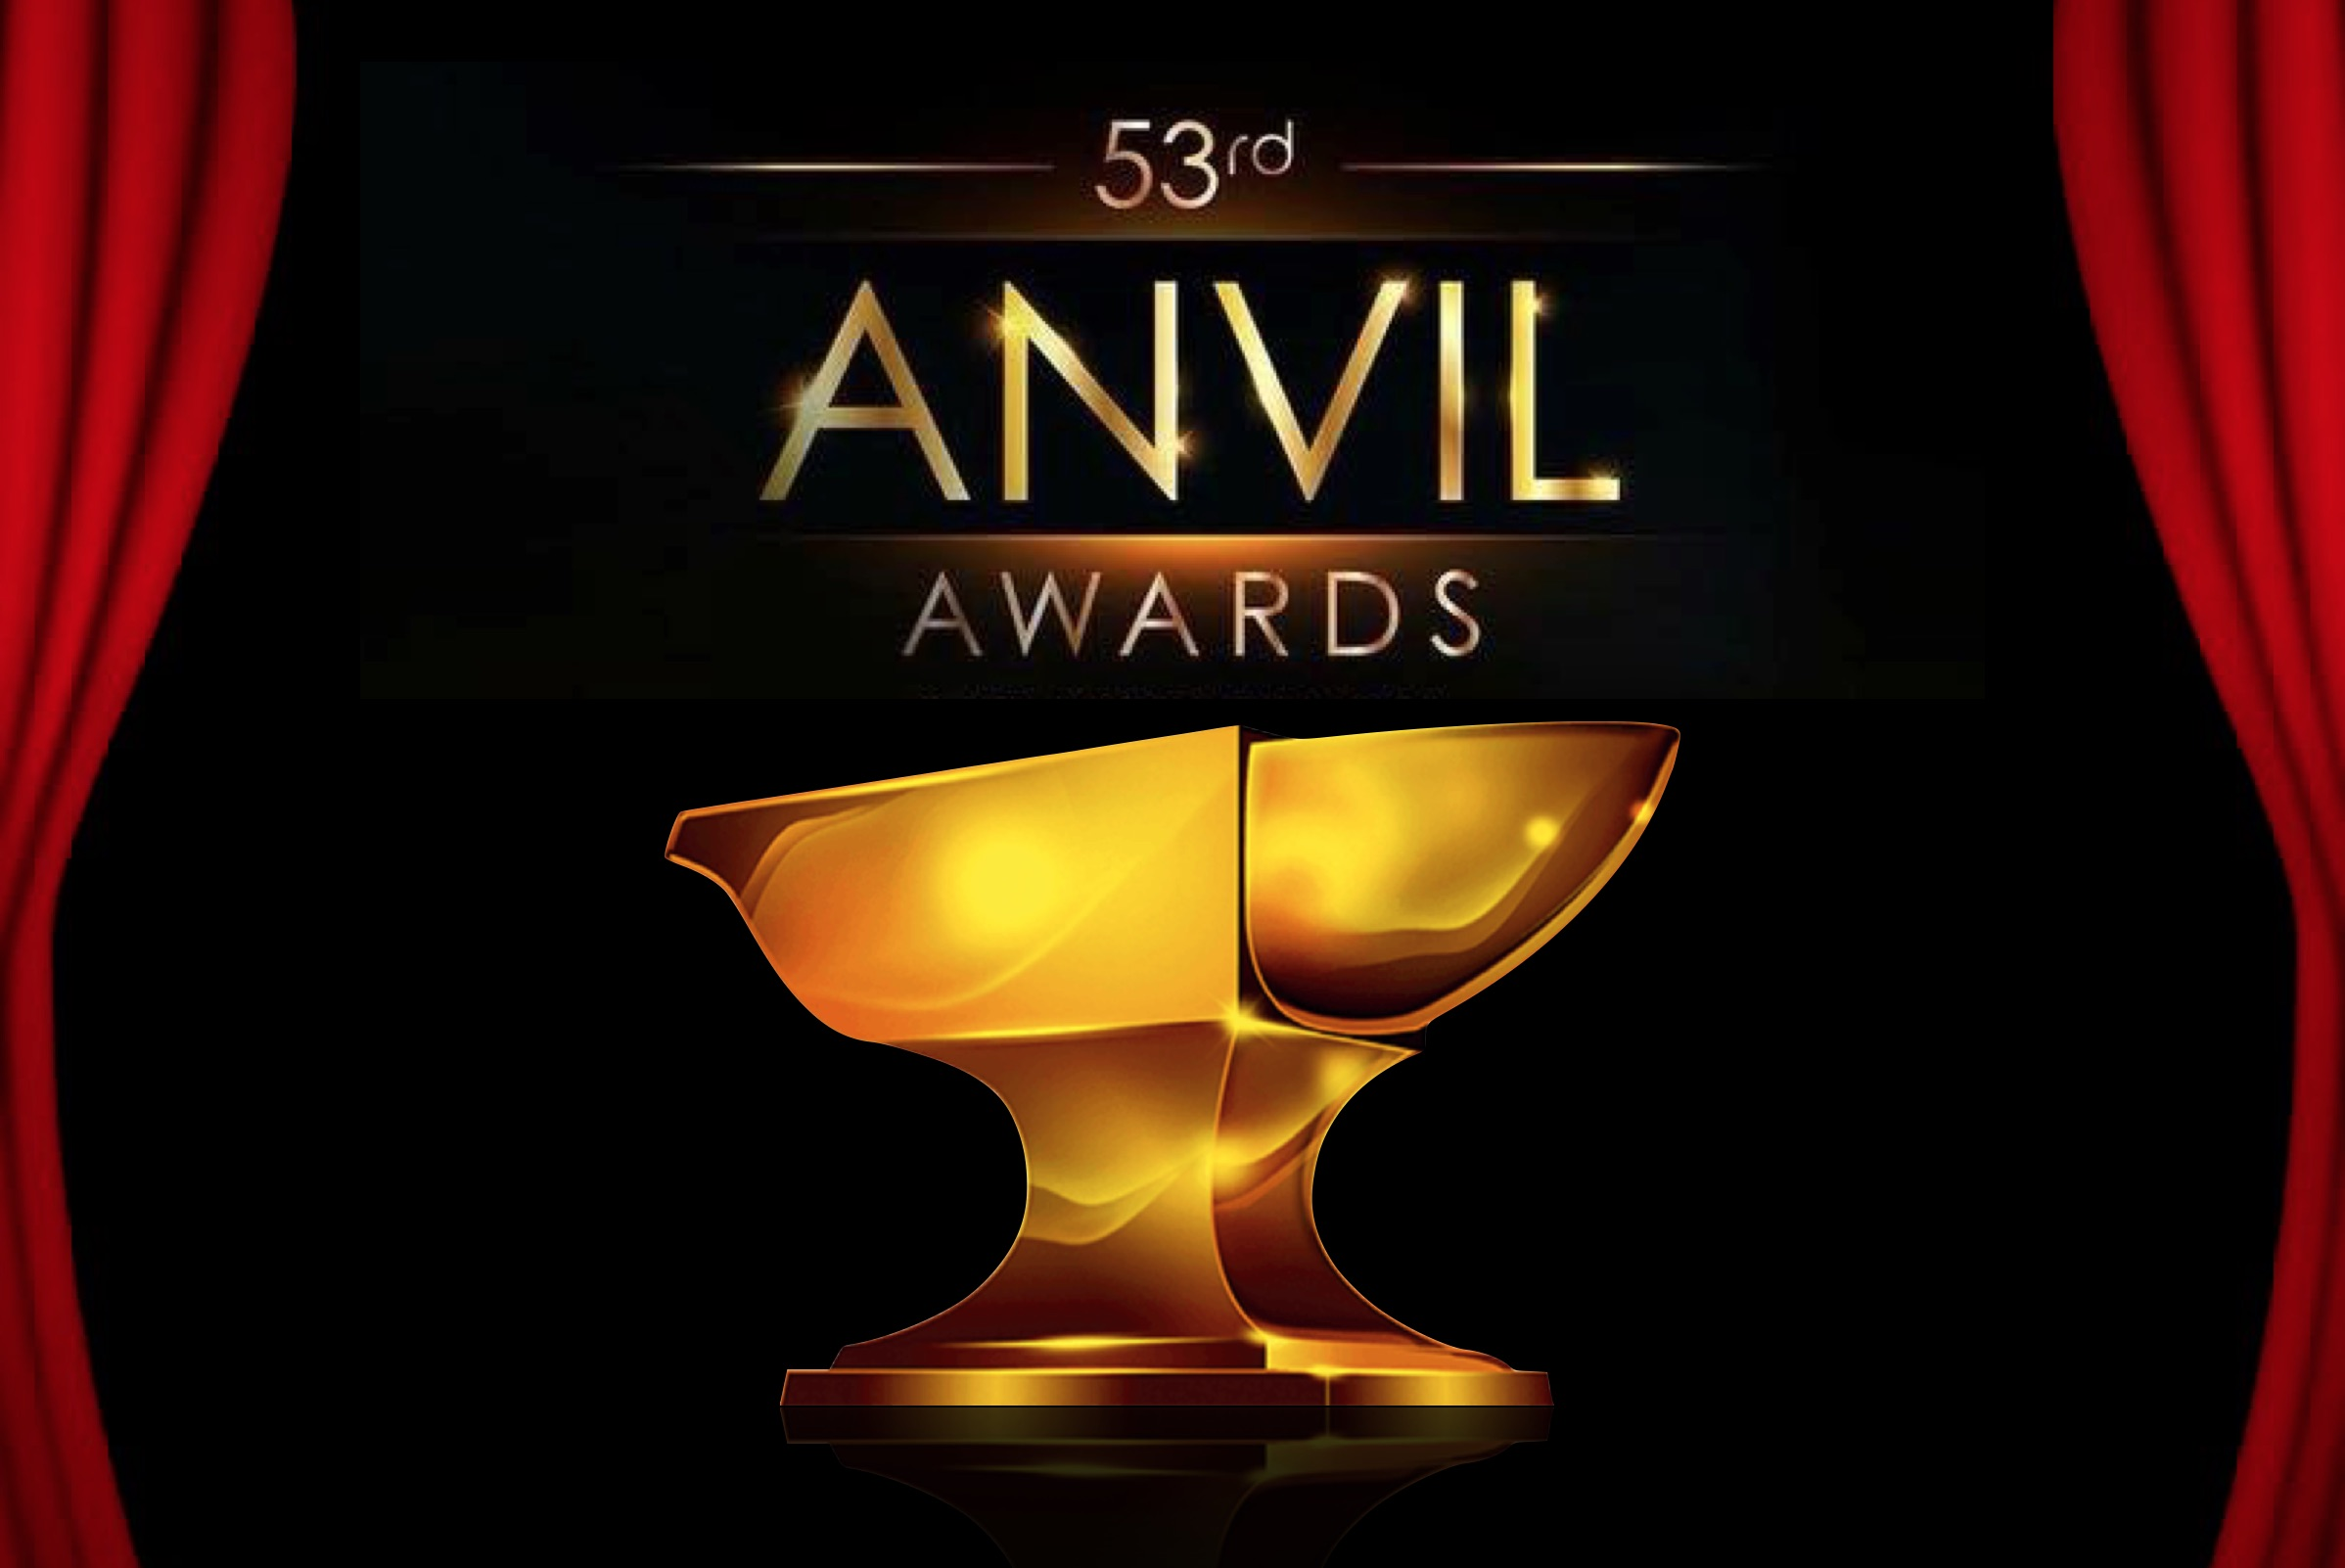 53rd Anvil Awards